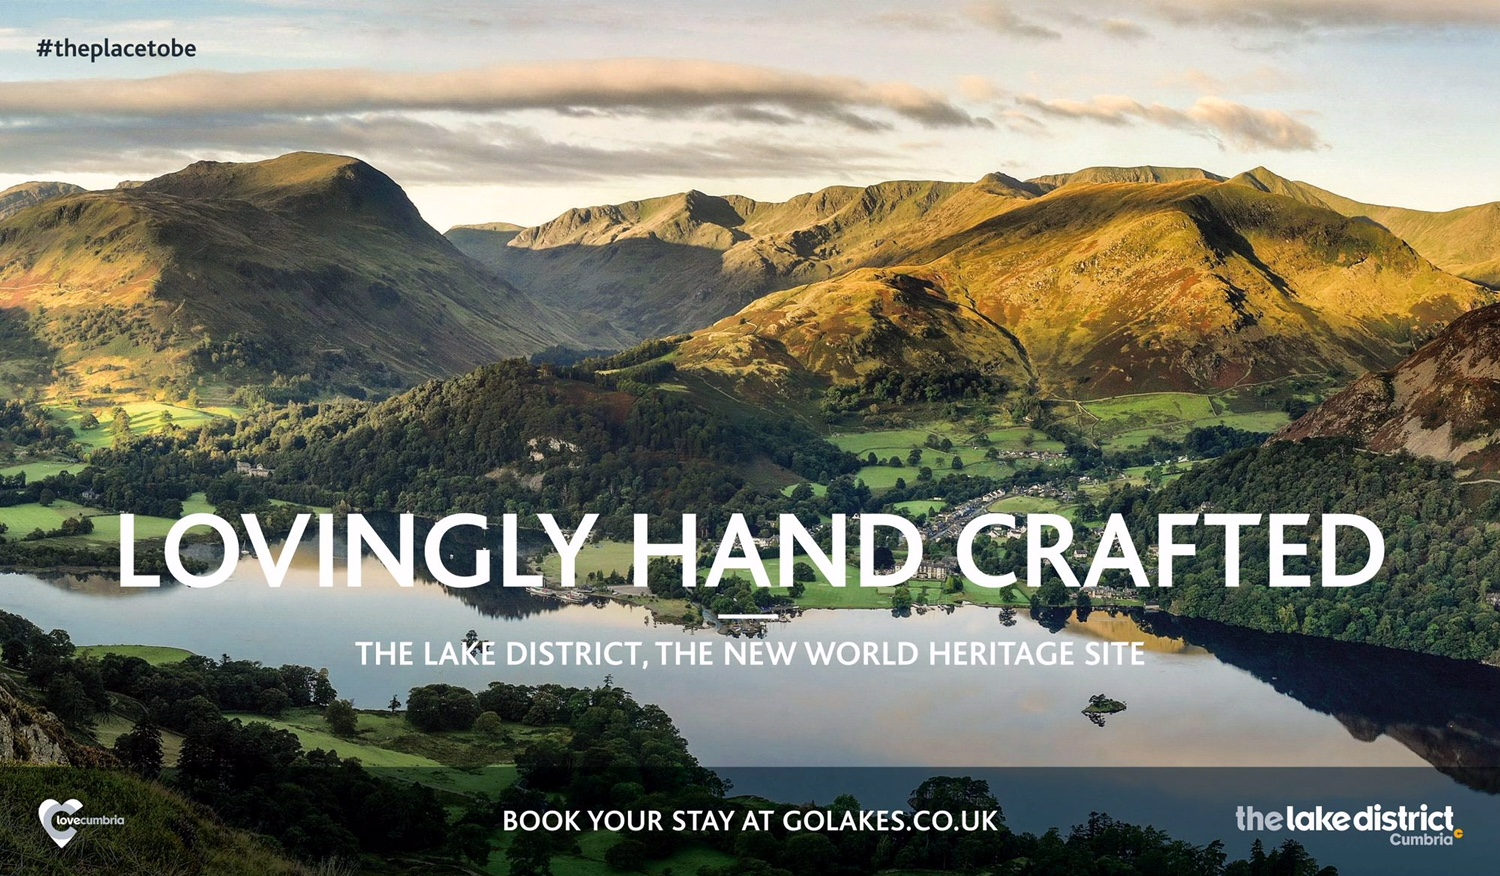 Cumbria Tourism Winter Marketing Campaign